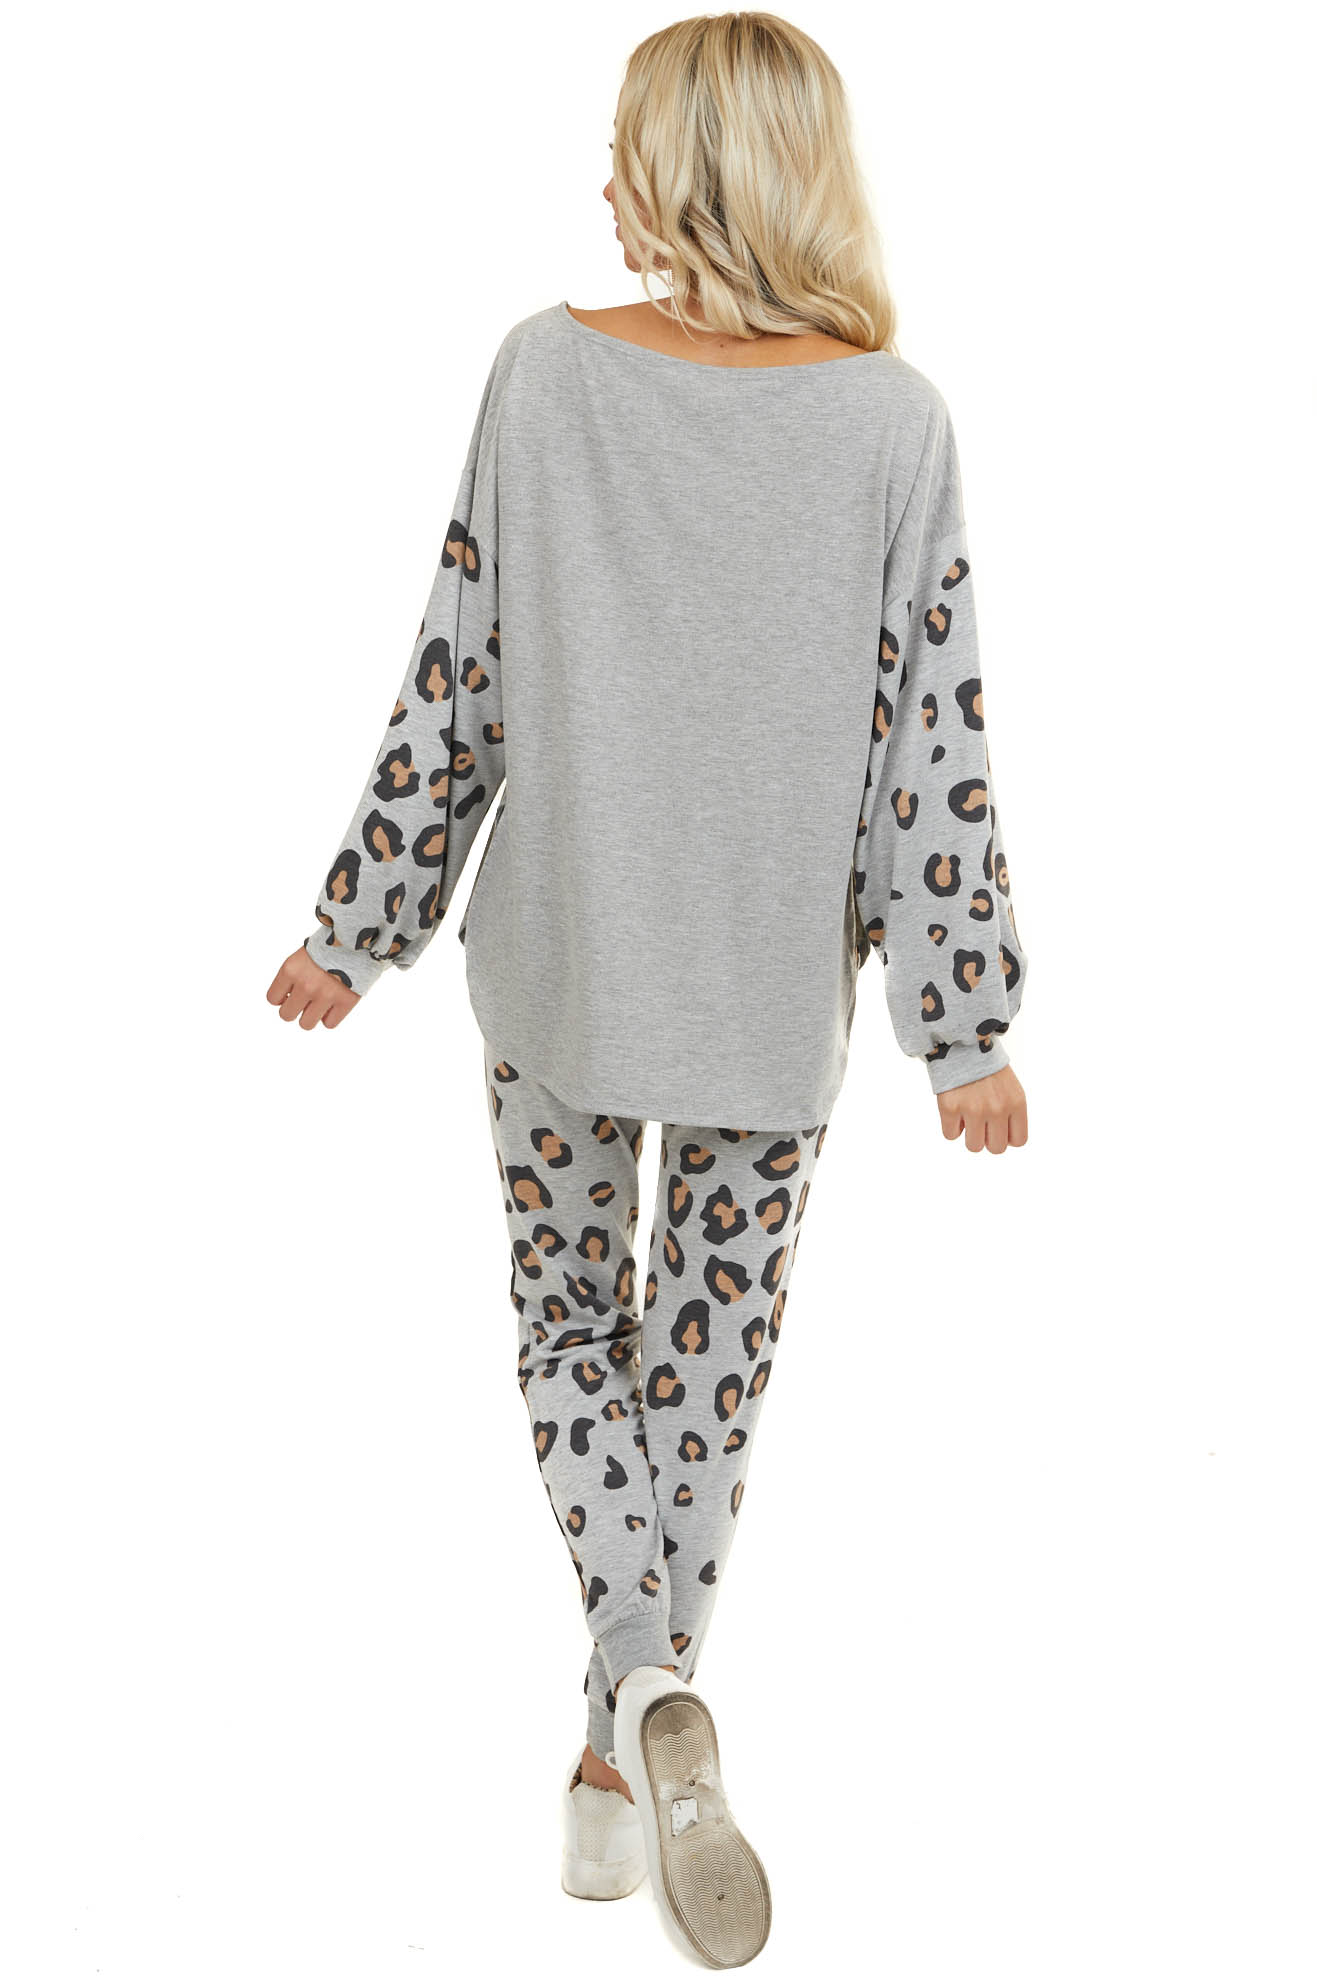 Heathered Grey Knit Top with Long Leopard Print Sleeves